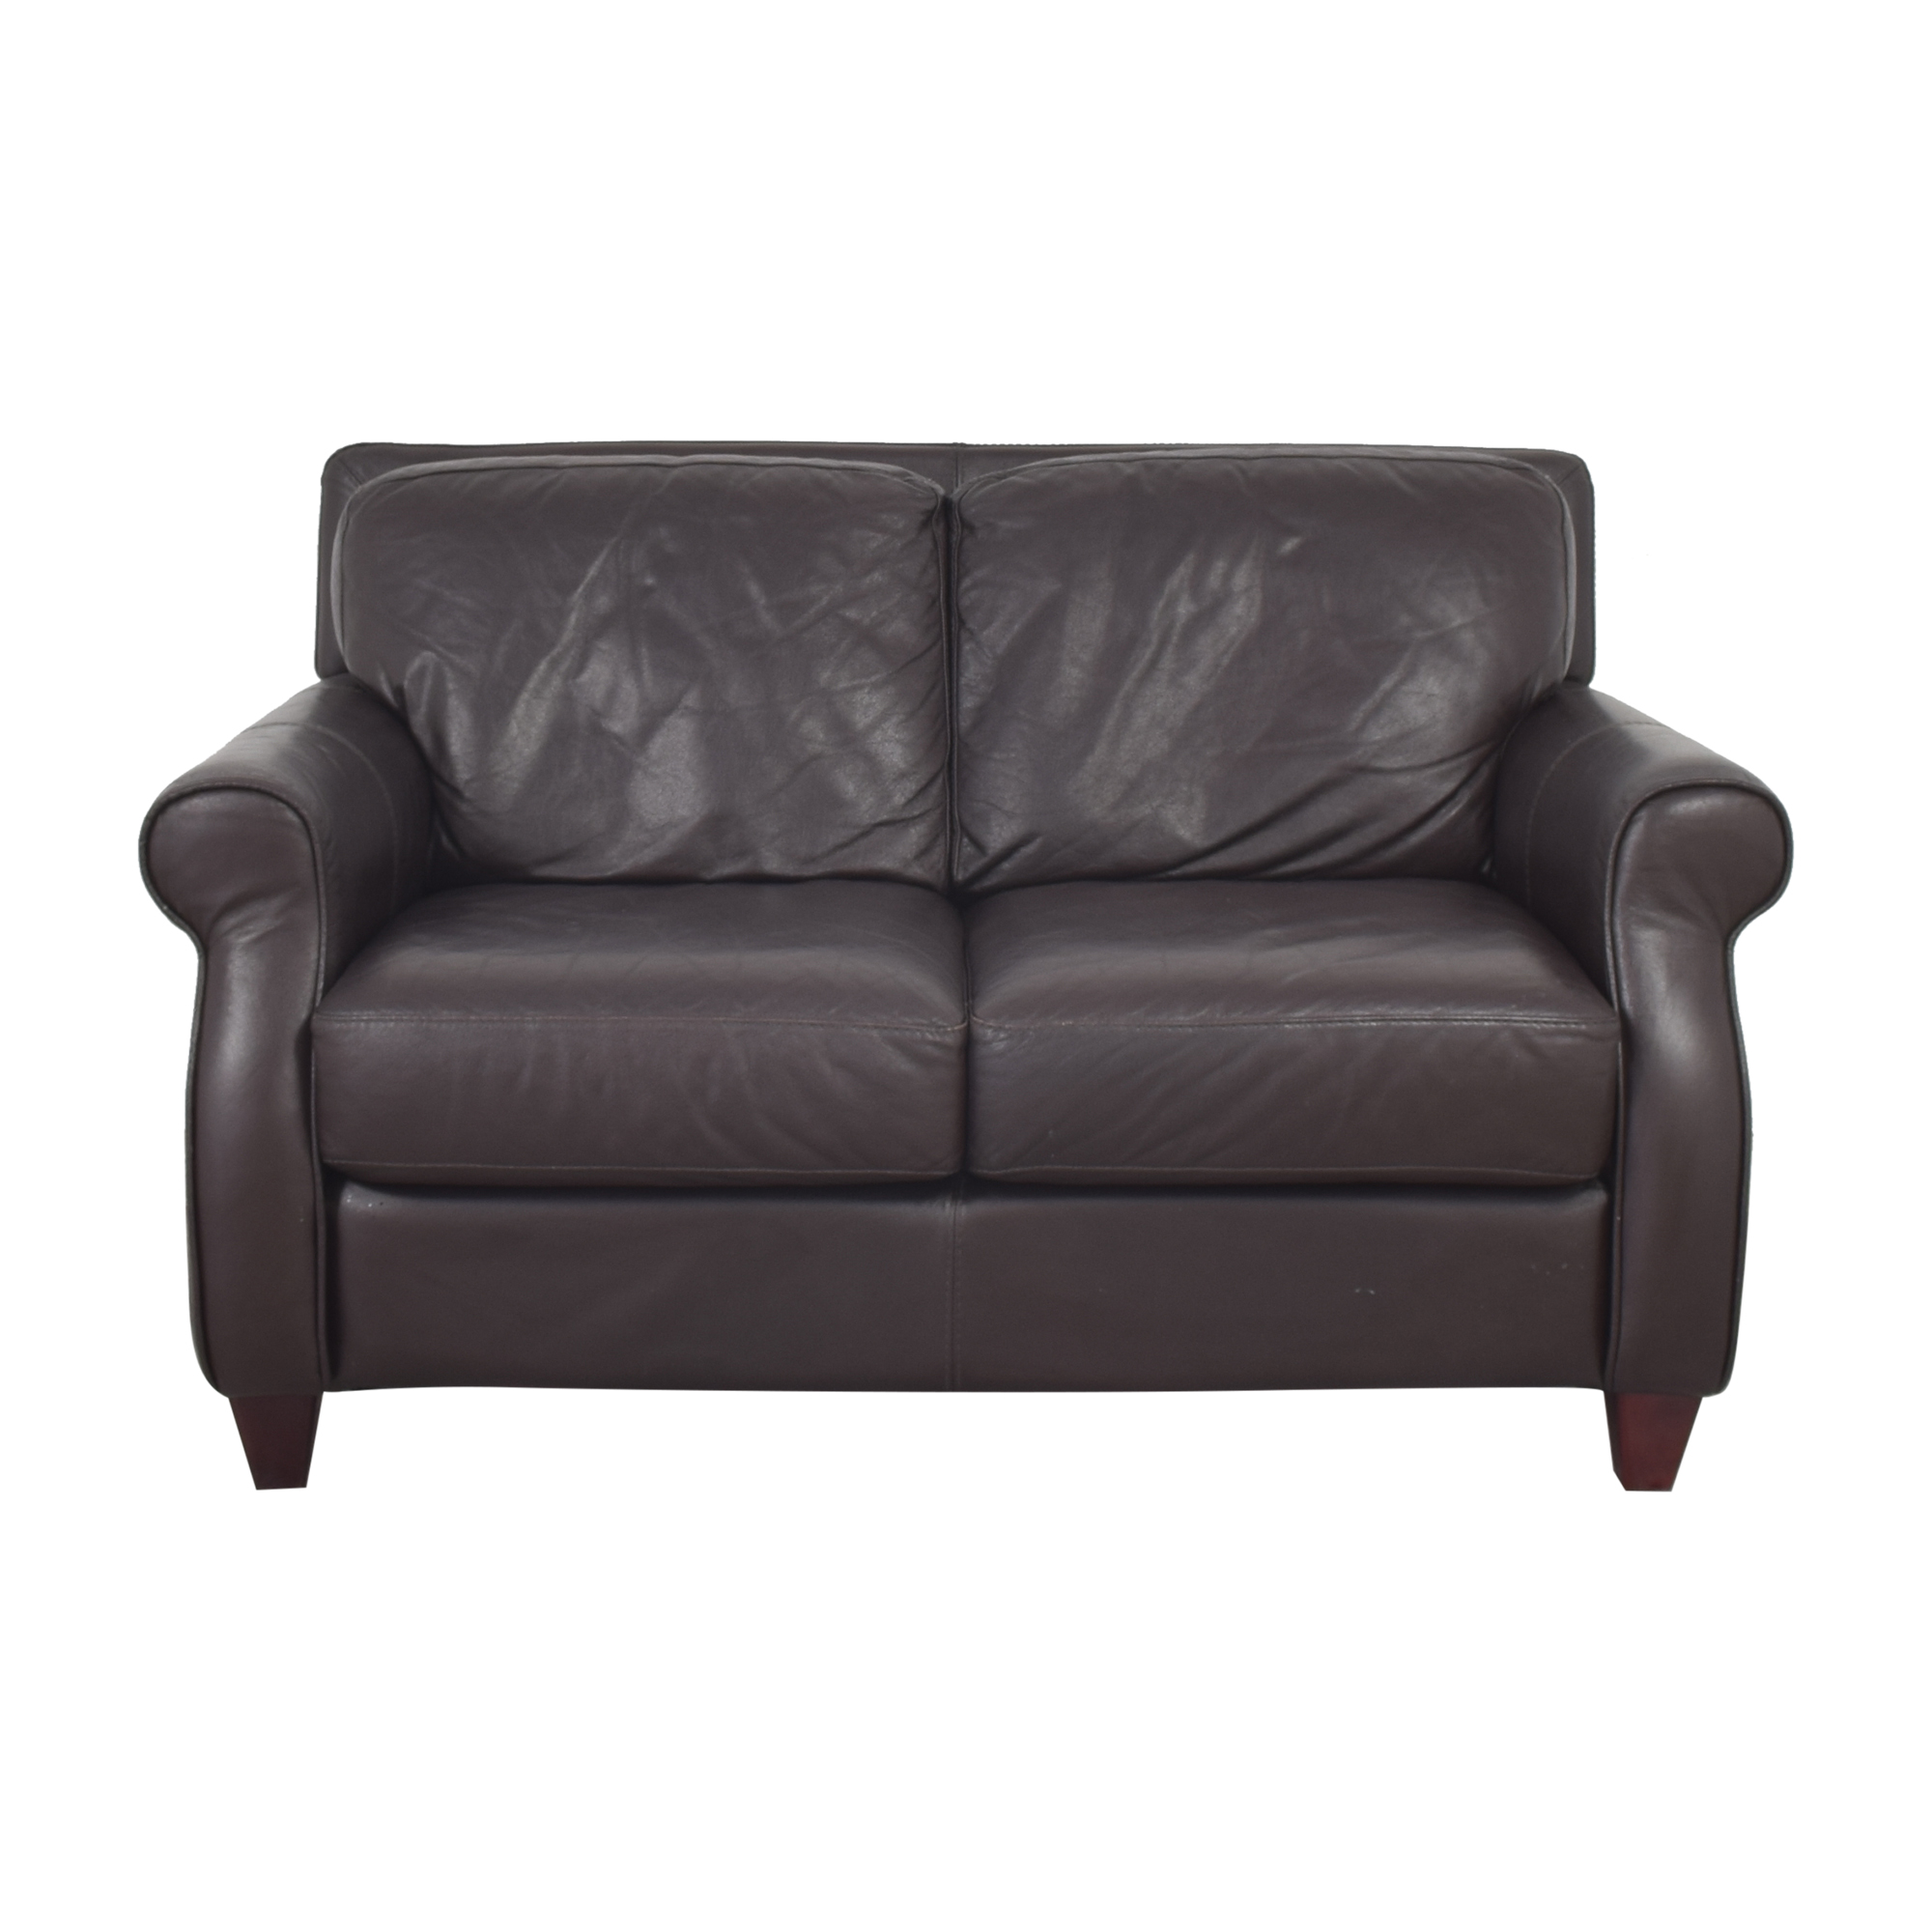 Raymour & Flanigan Raymour & Flanigan Roll Arm Loveseat price